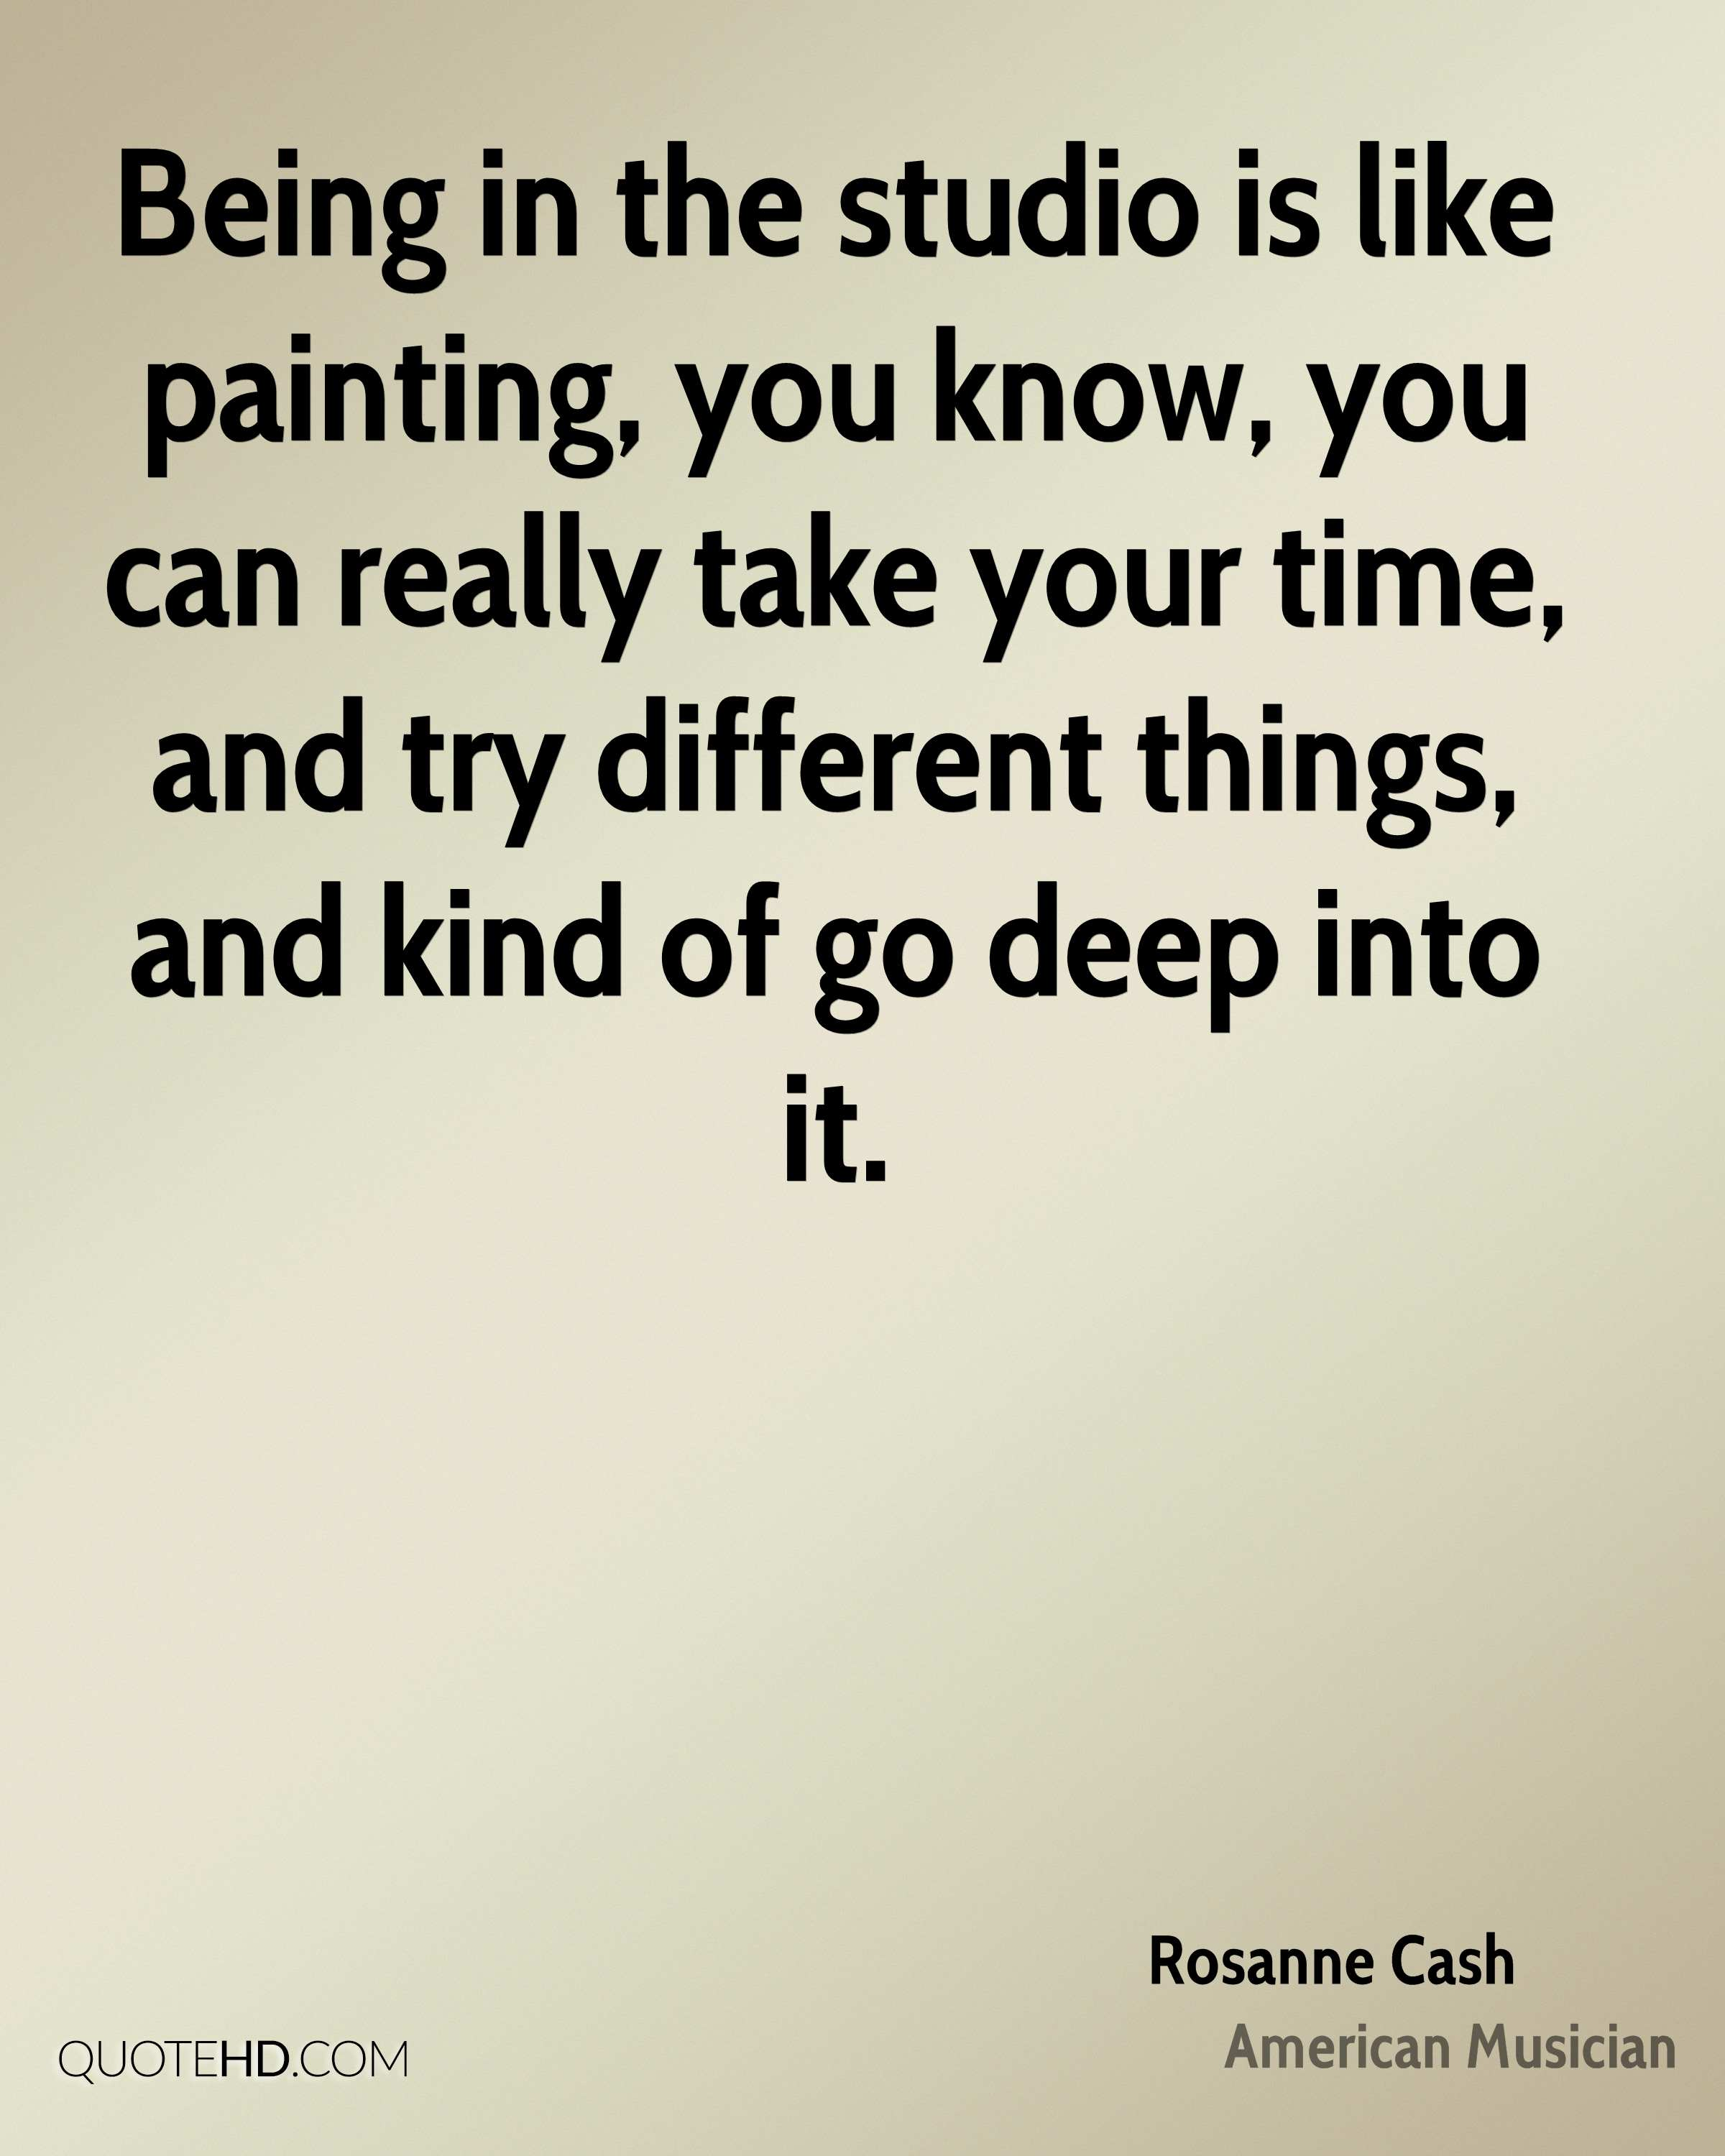 Being in the studio is like painting, you know, you can really take your time, and try different things, and kind of go deep into it.